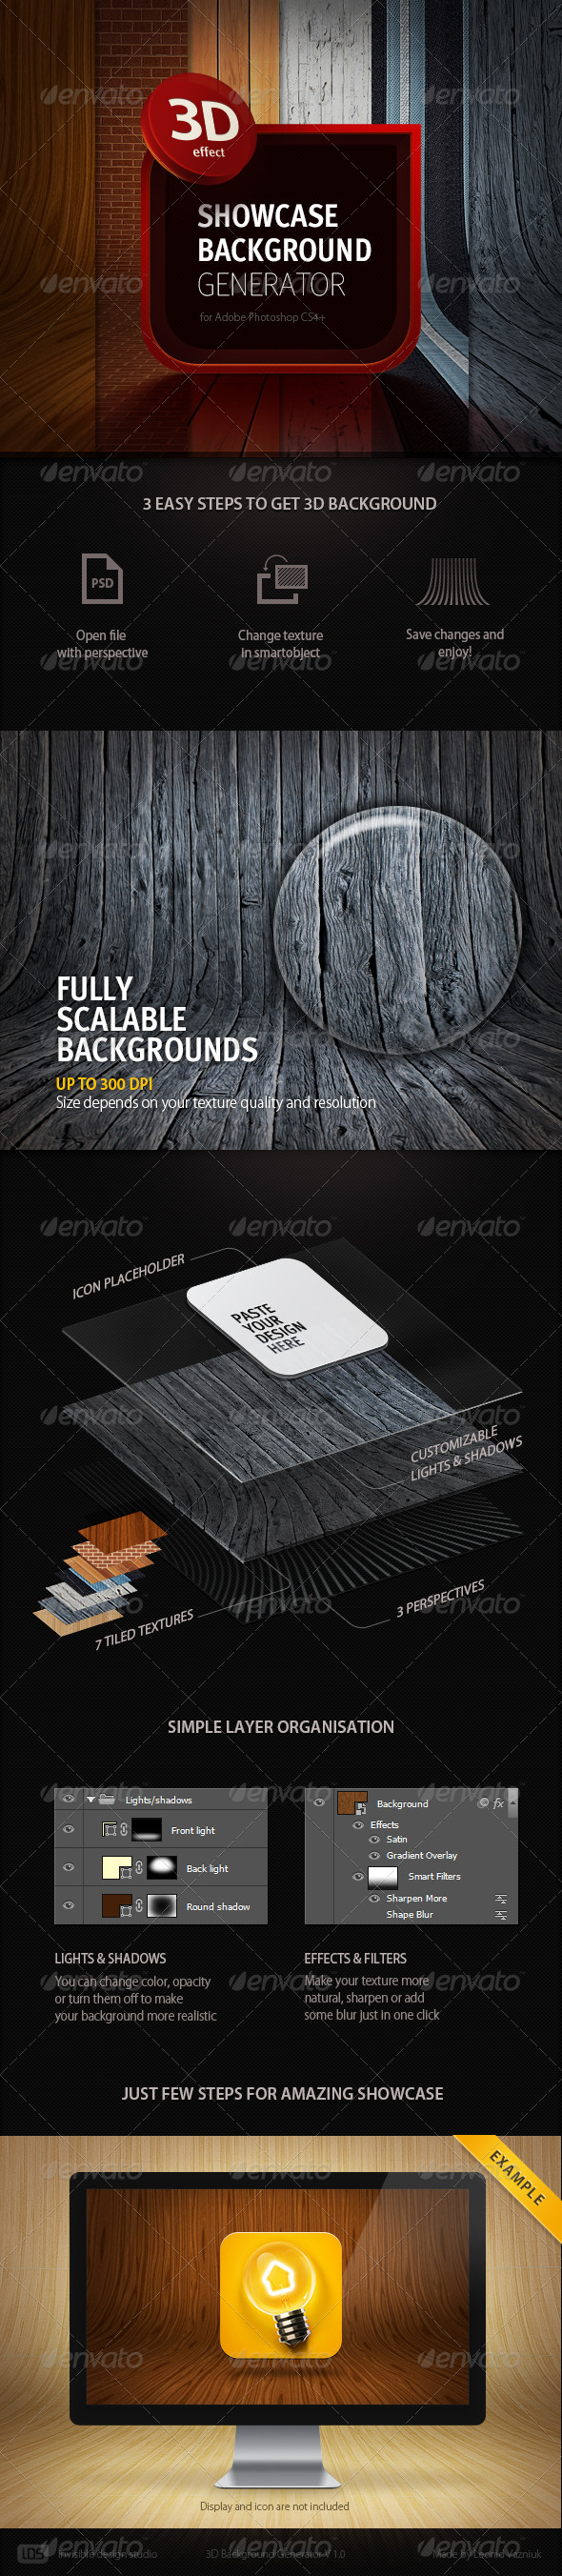 GraphicRiver 3D Showcase Background Generator 4122381